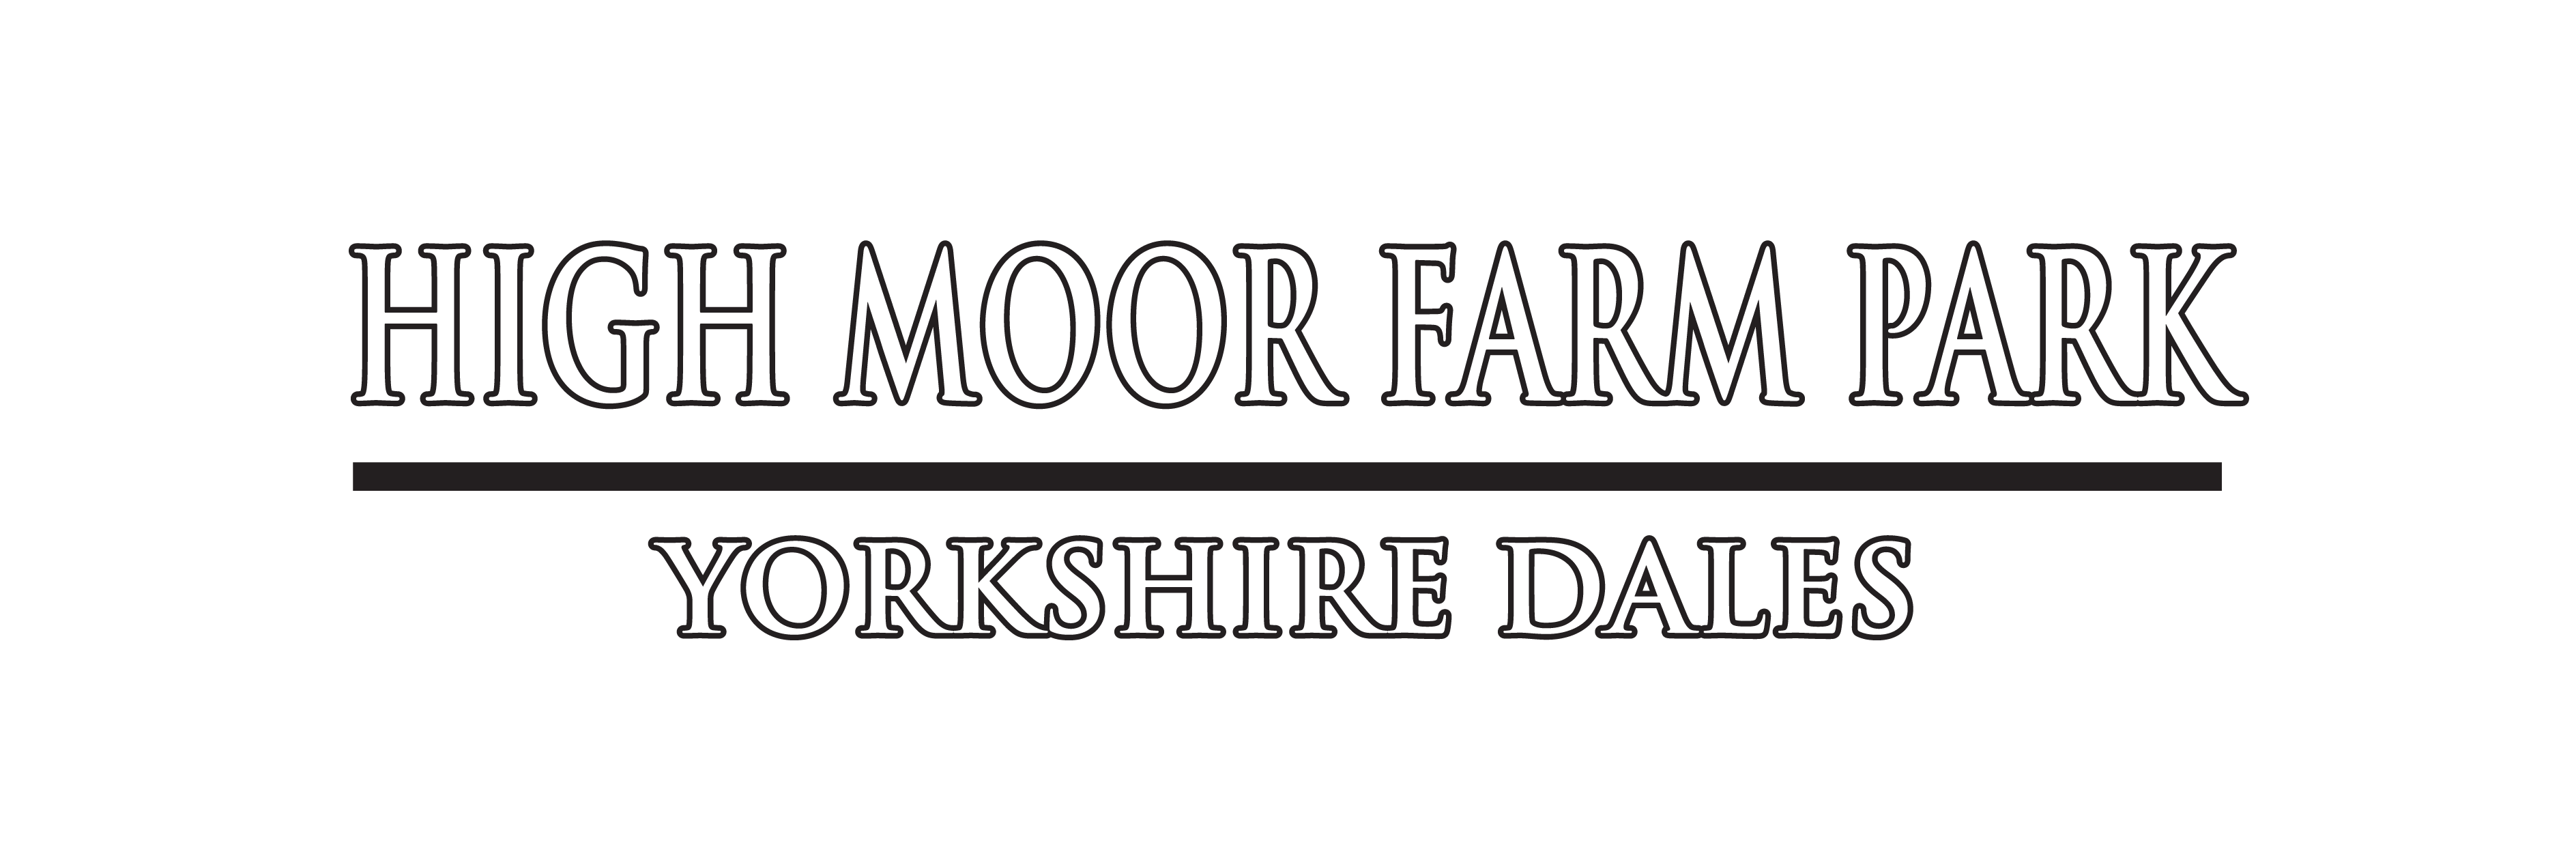 High Moor Farm Park, Caravan Park Yorkshire Dale, Holiday Park Yorkshire Dales